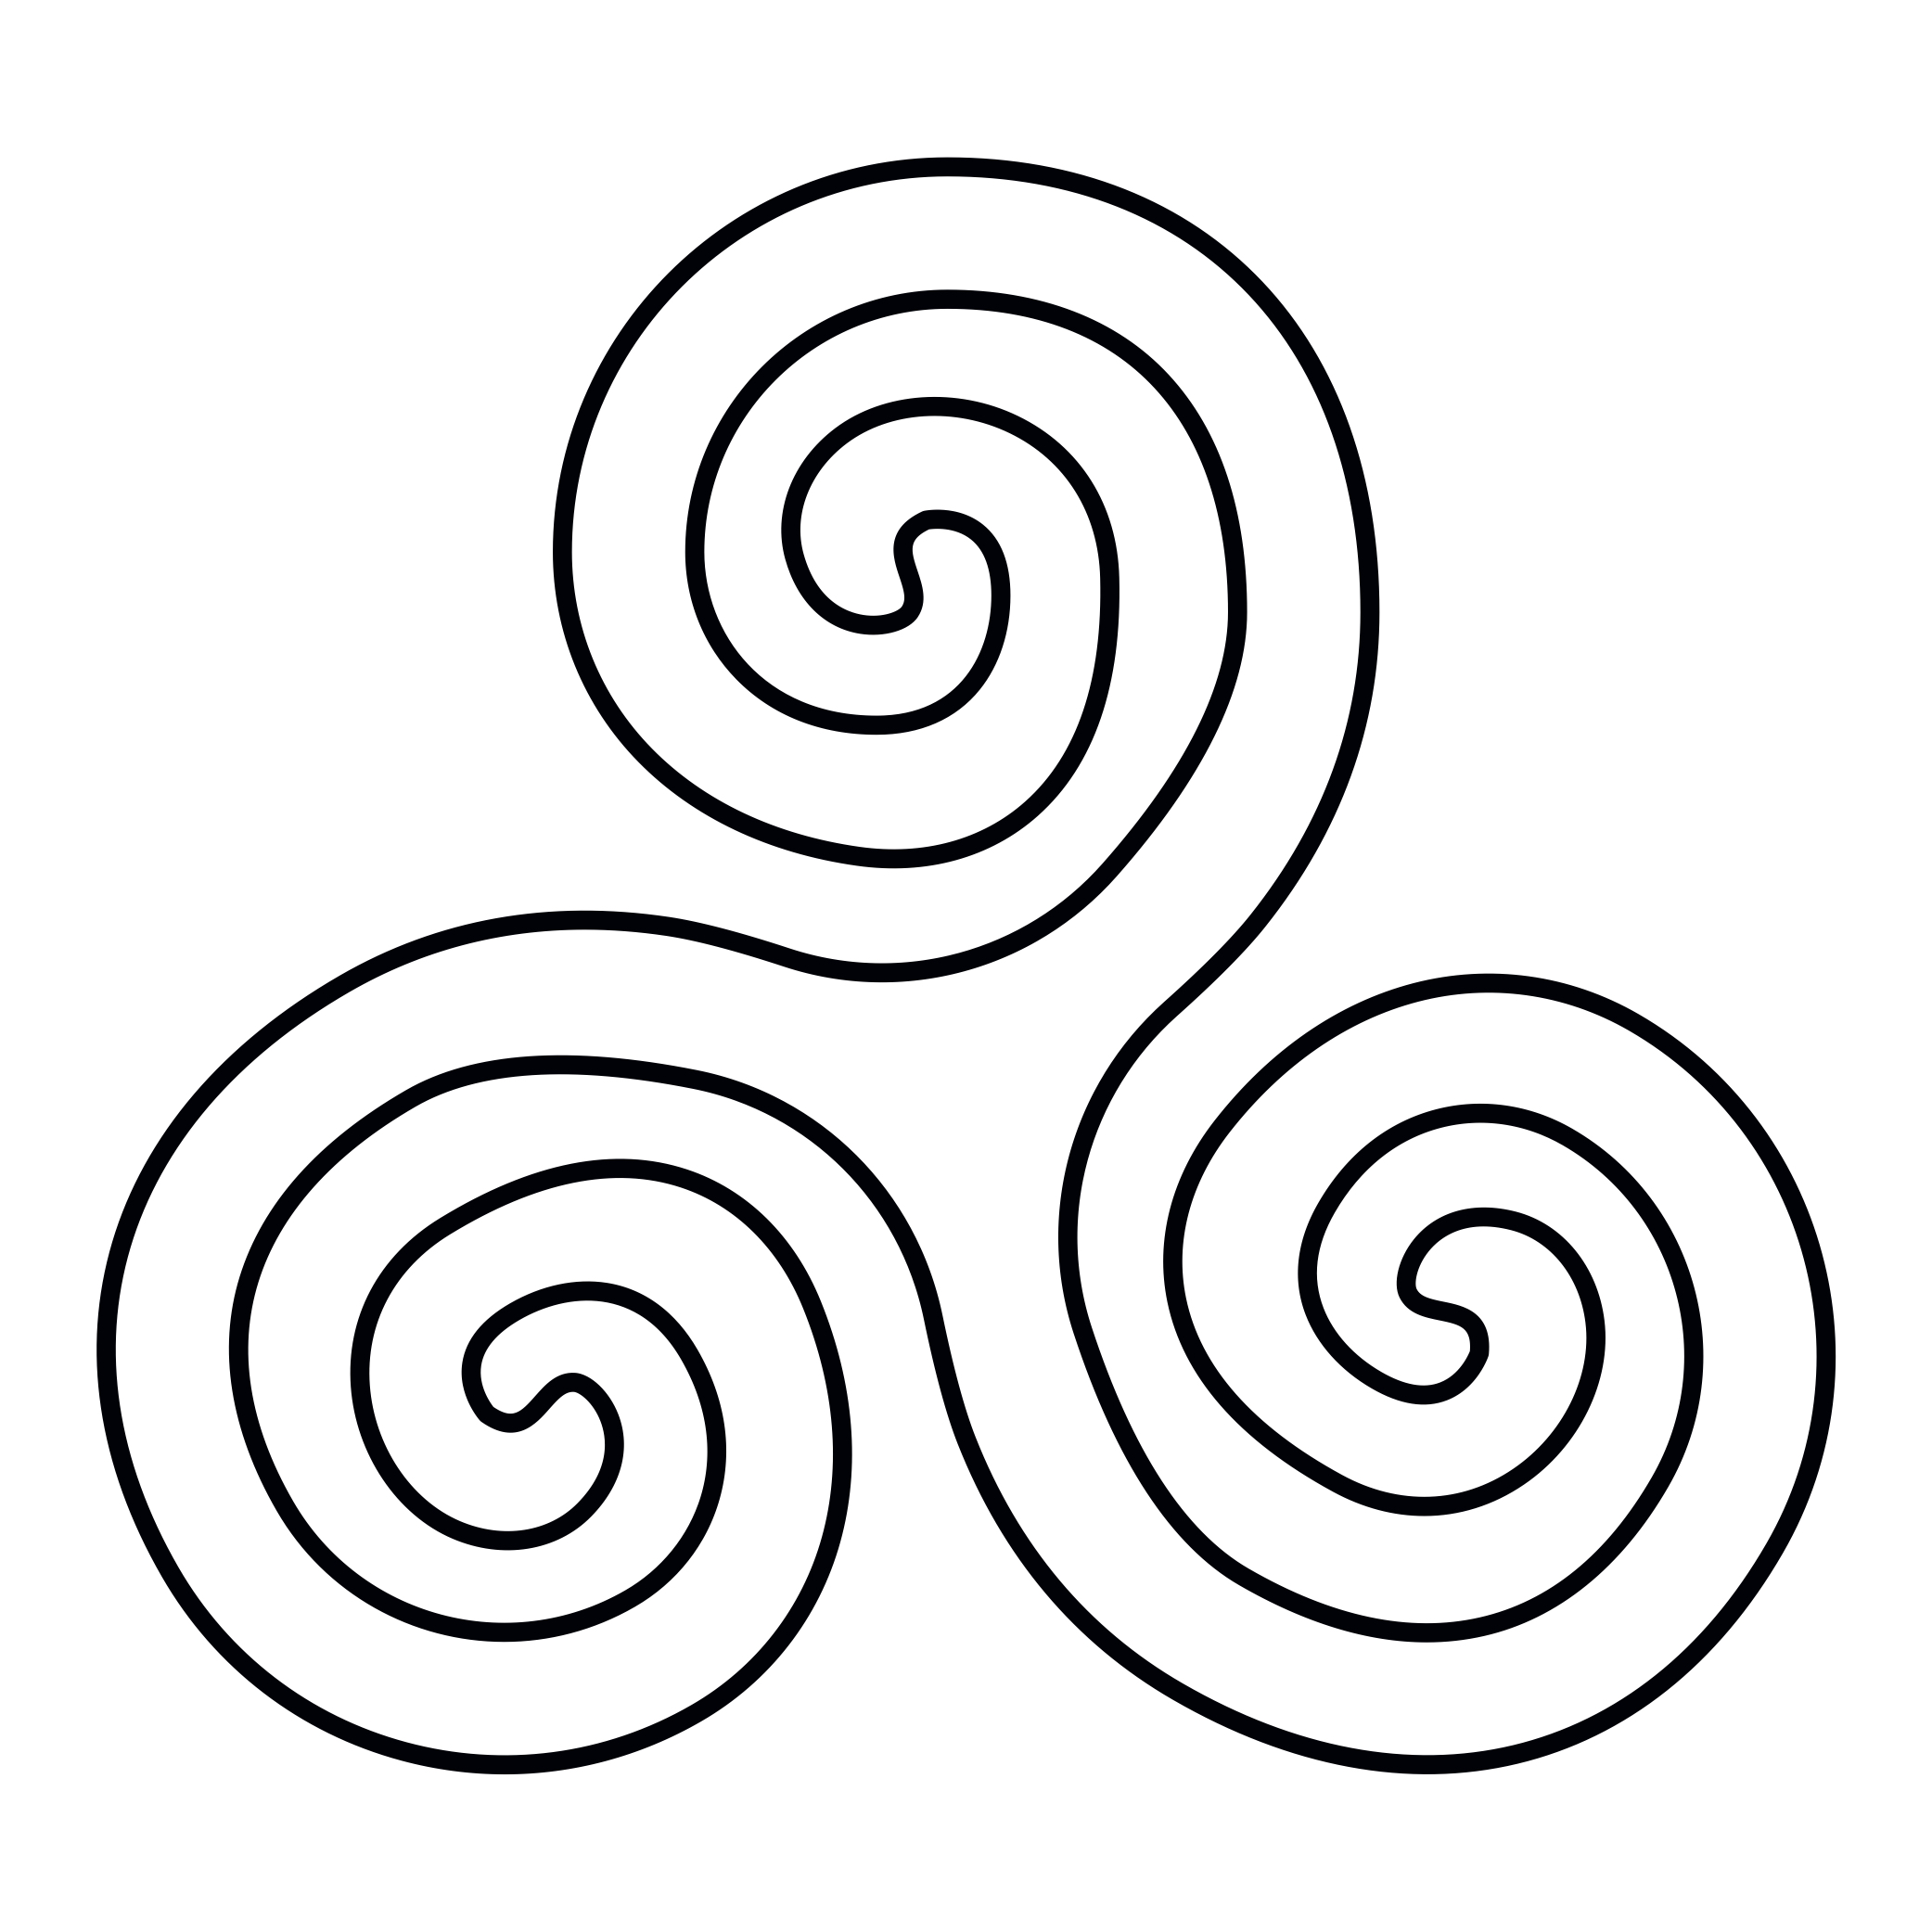 Triskele - symbol of natural resilience